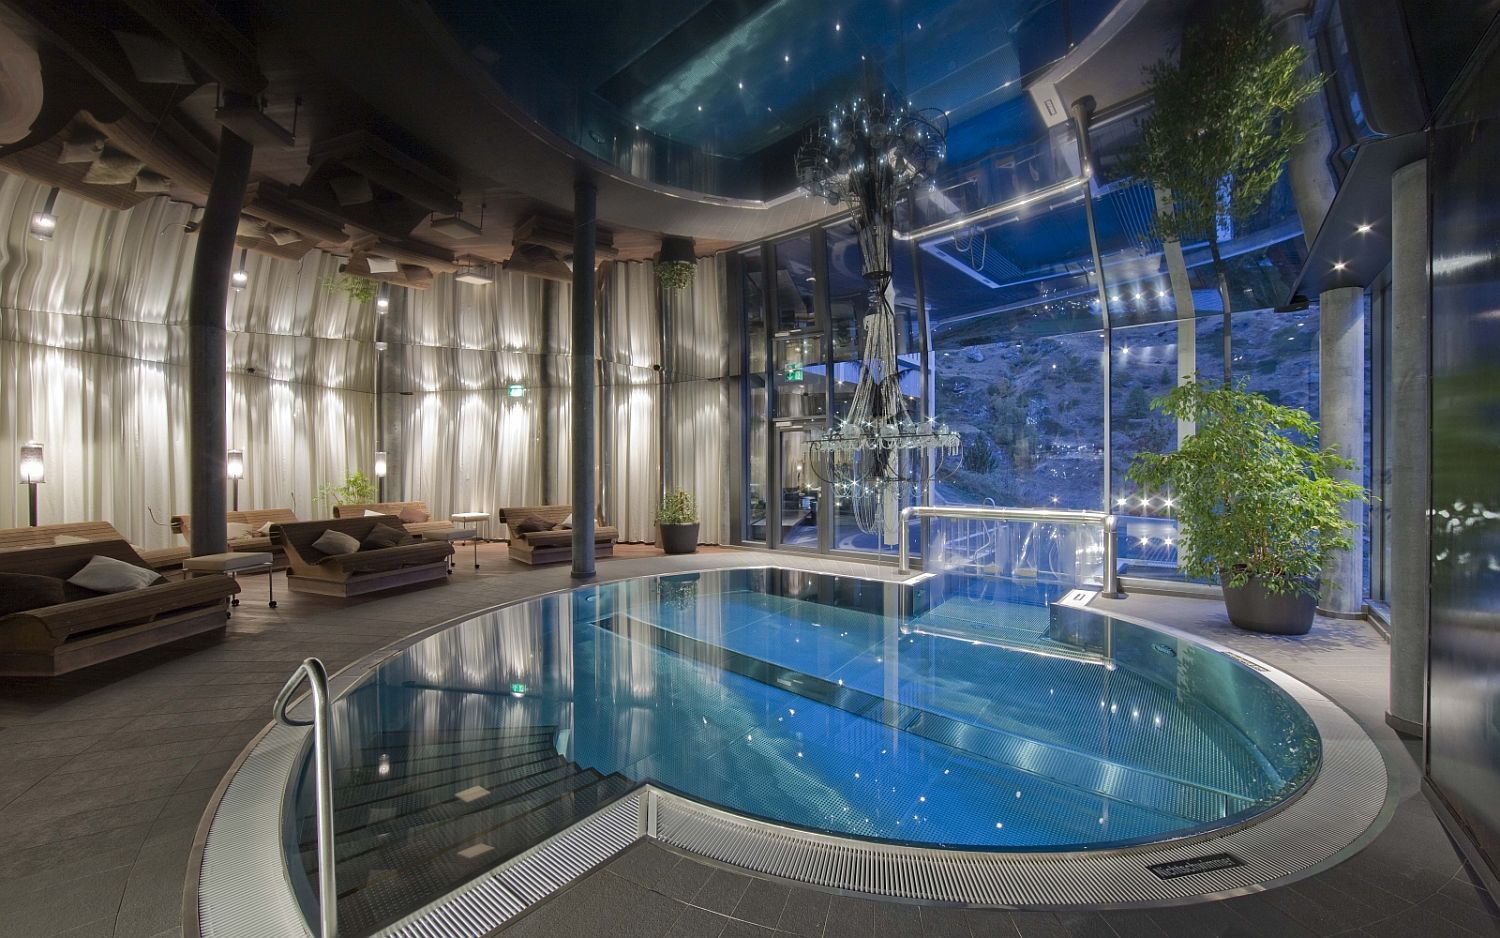 Amazing spa and pool at the Hotel Matterhorn Focus